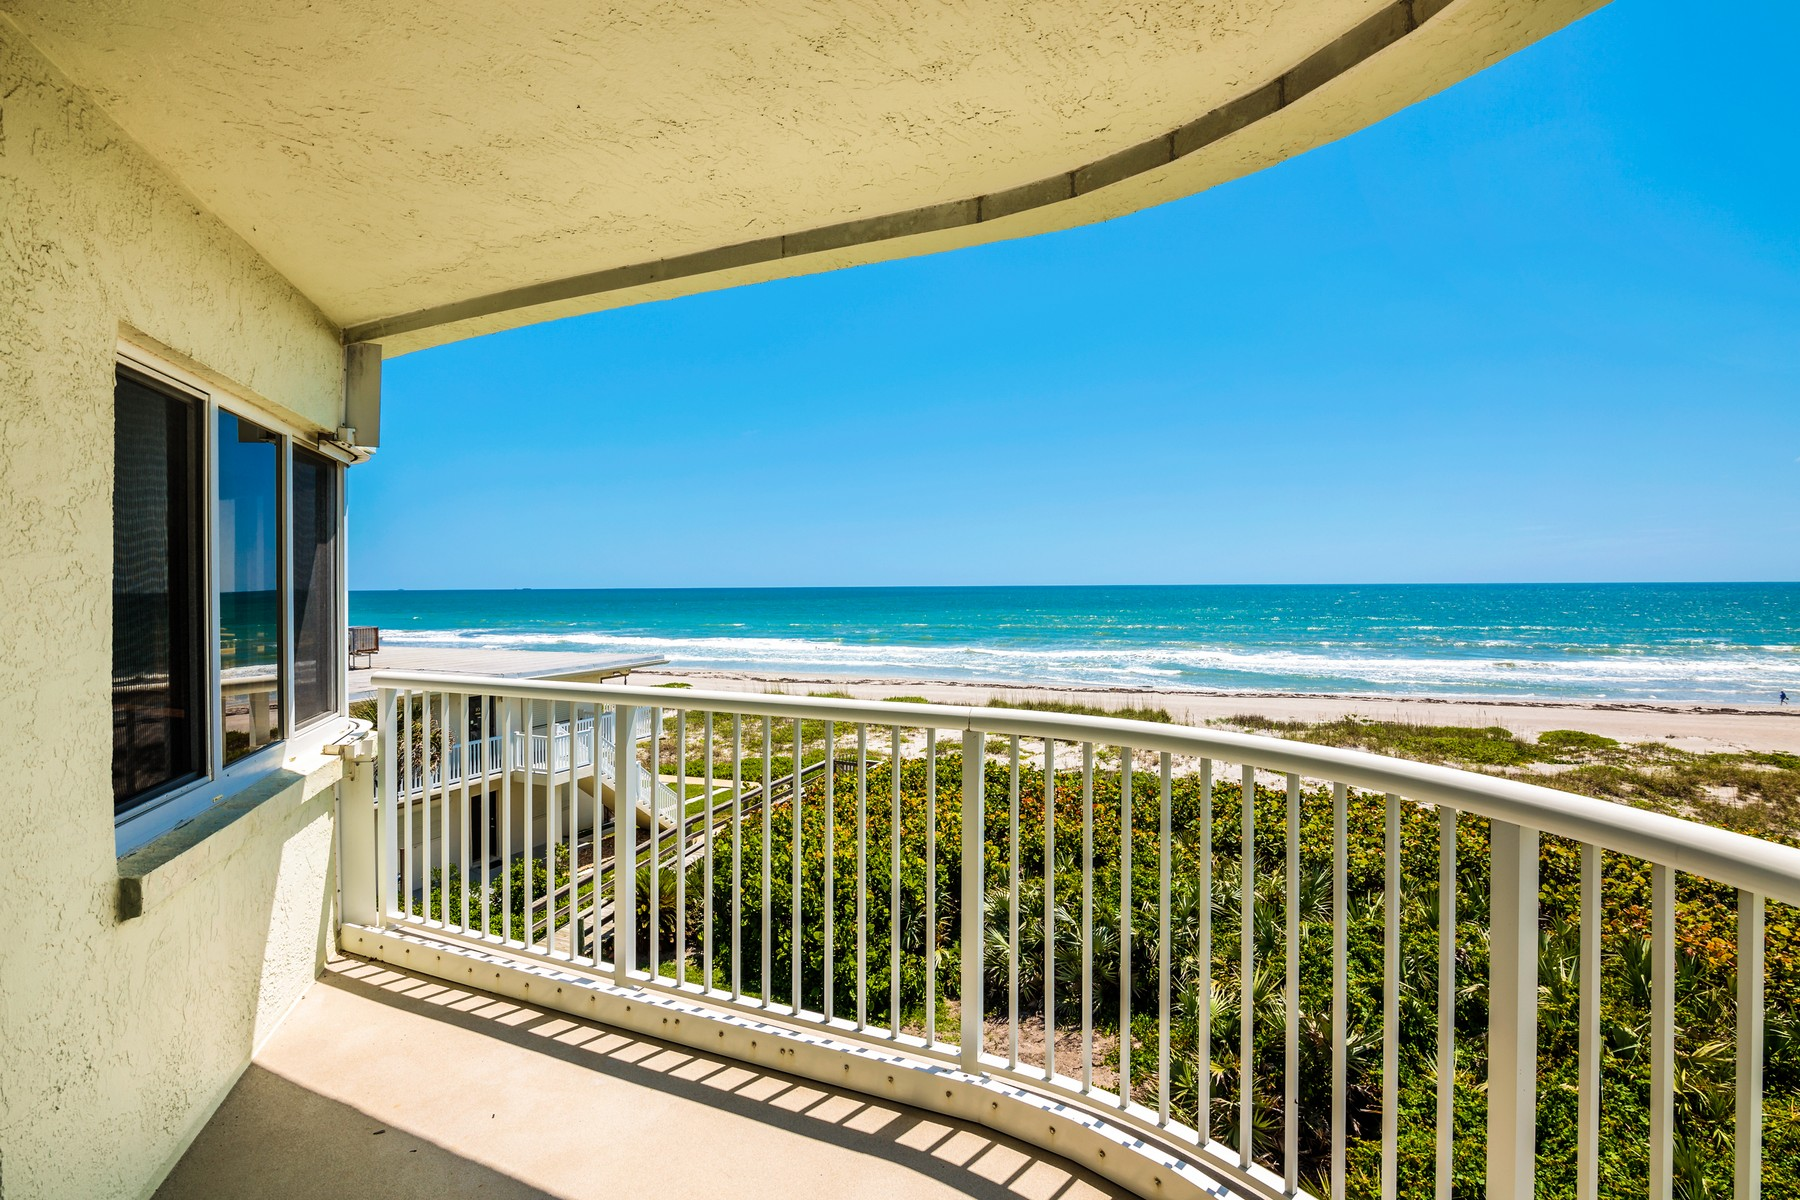 Condominiums por un Venta en Casa Playa 3031 S. Atlantic 302, Cocoa Beach, Florida 32931 Estados Unidos